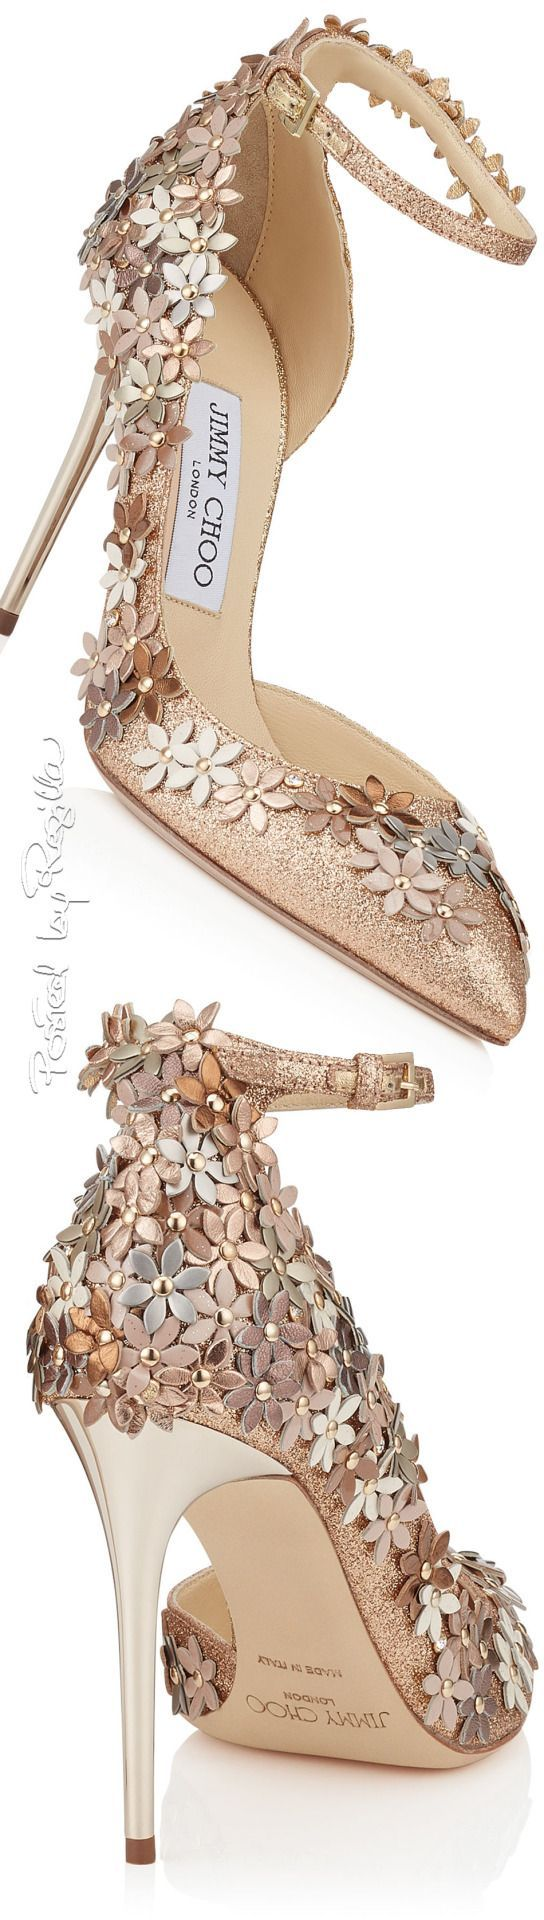 Regilla ⚜ Una Fiorentina in California | shoes | Pinterest